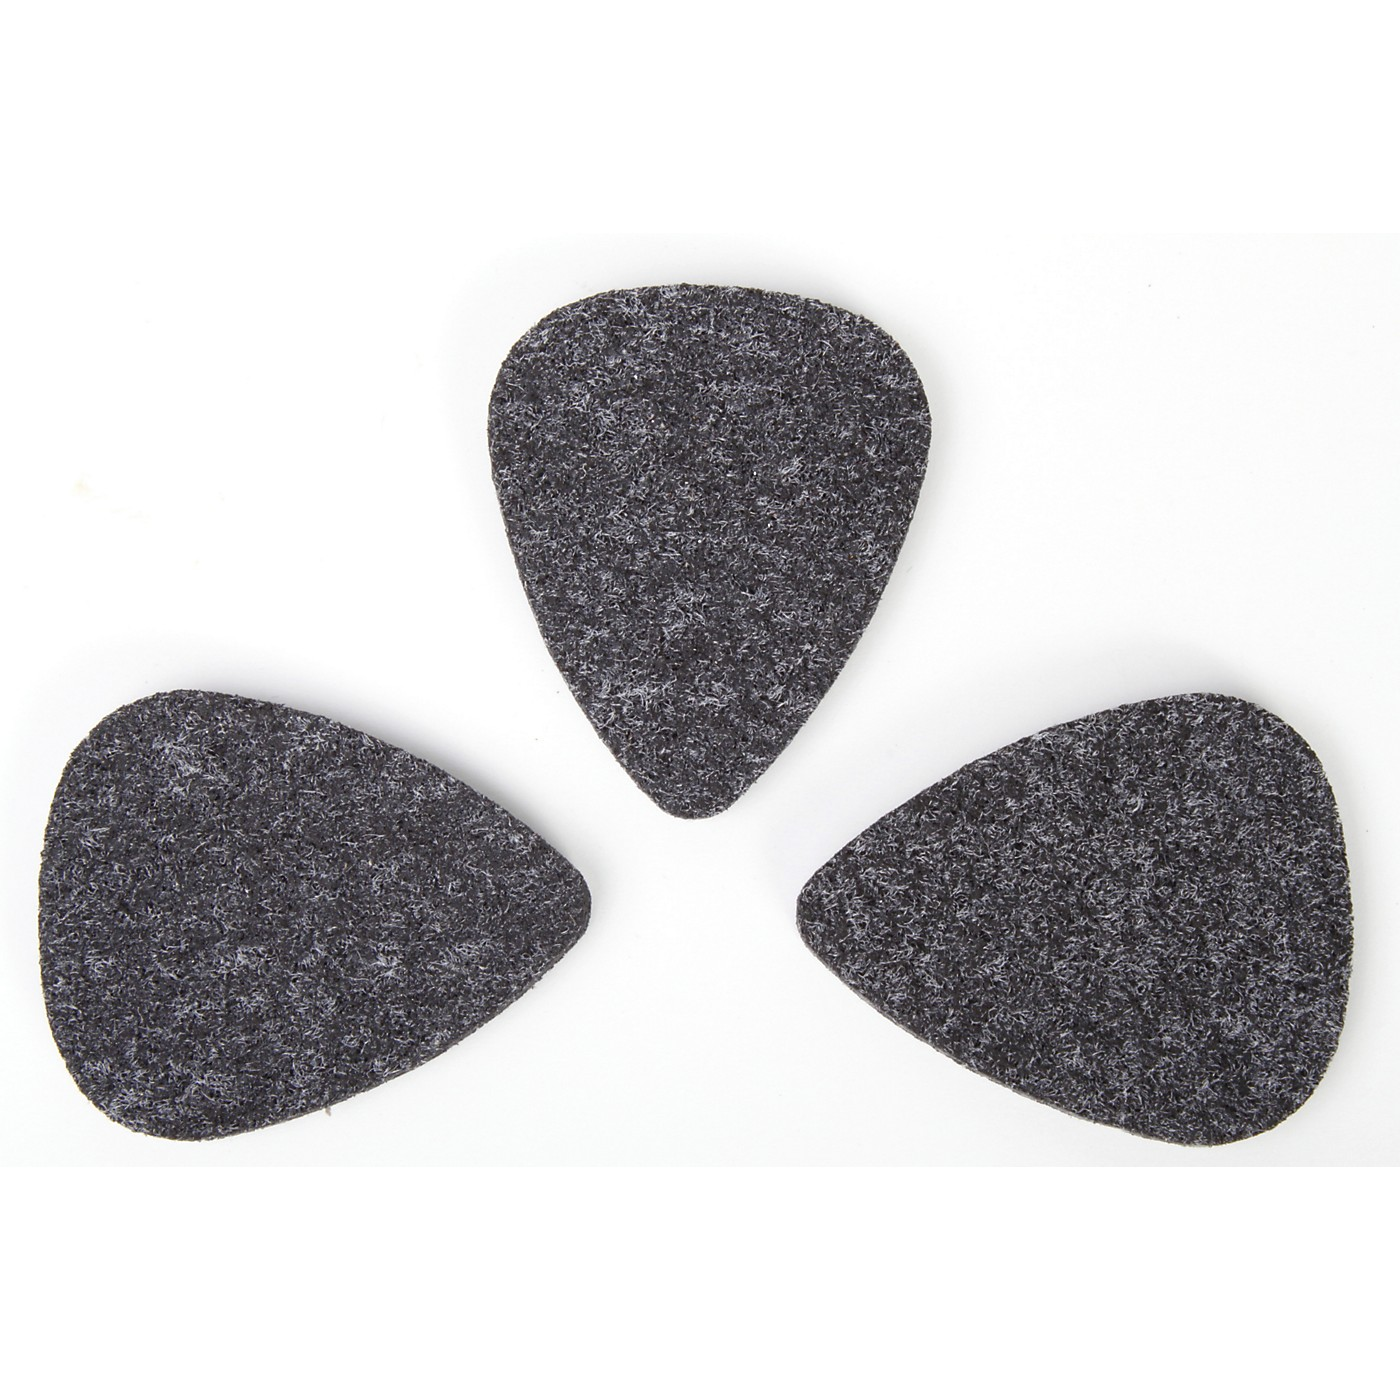 Mick's Picks Composite Felt Pick 3-Pack thumbnail